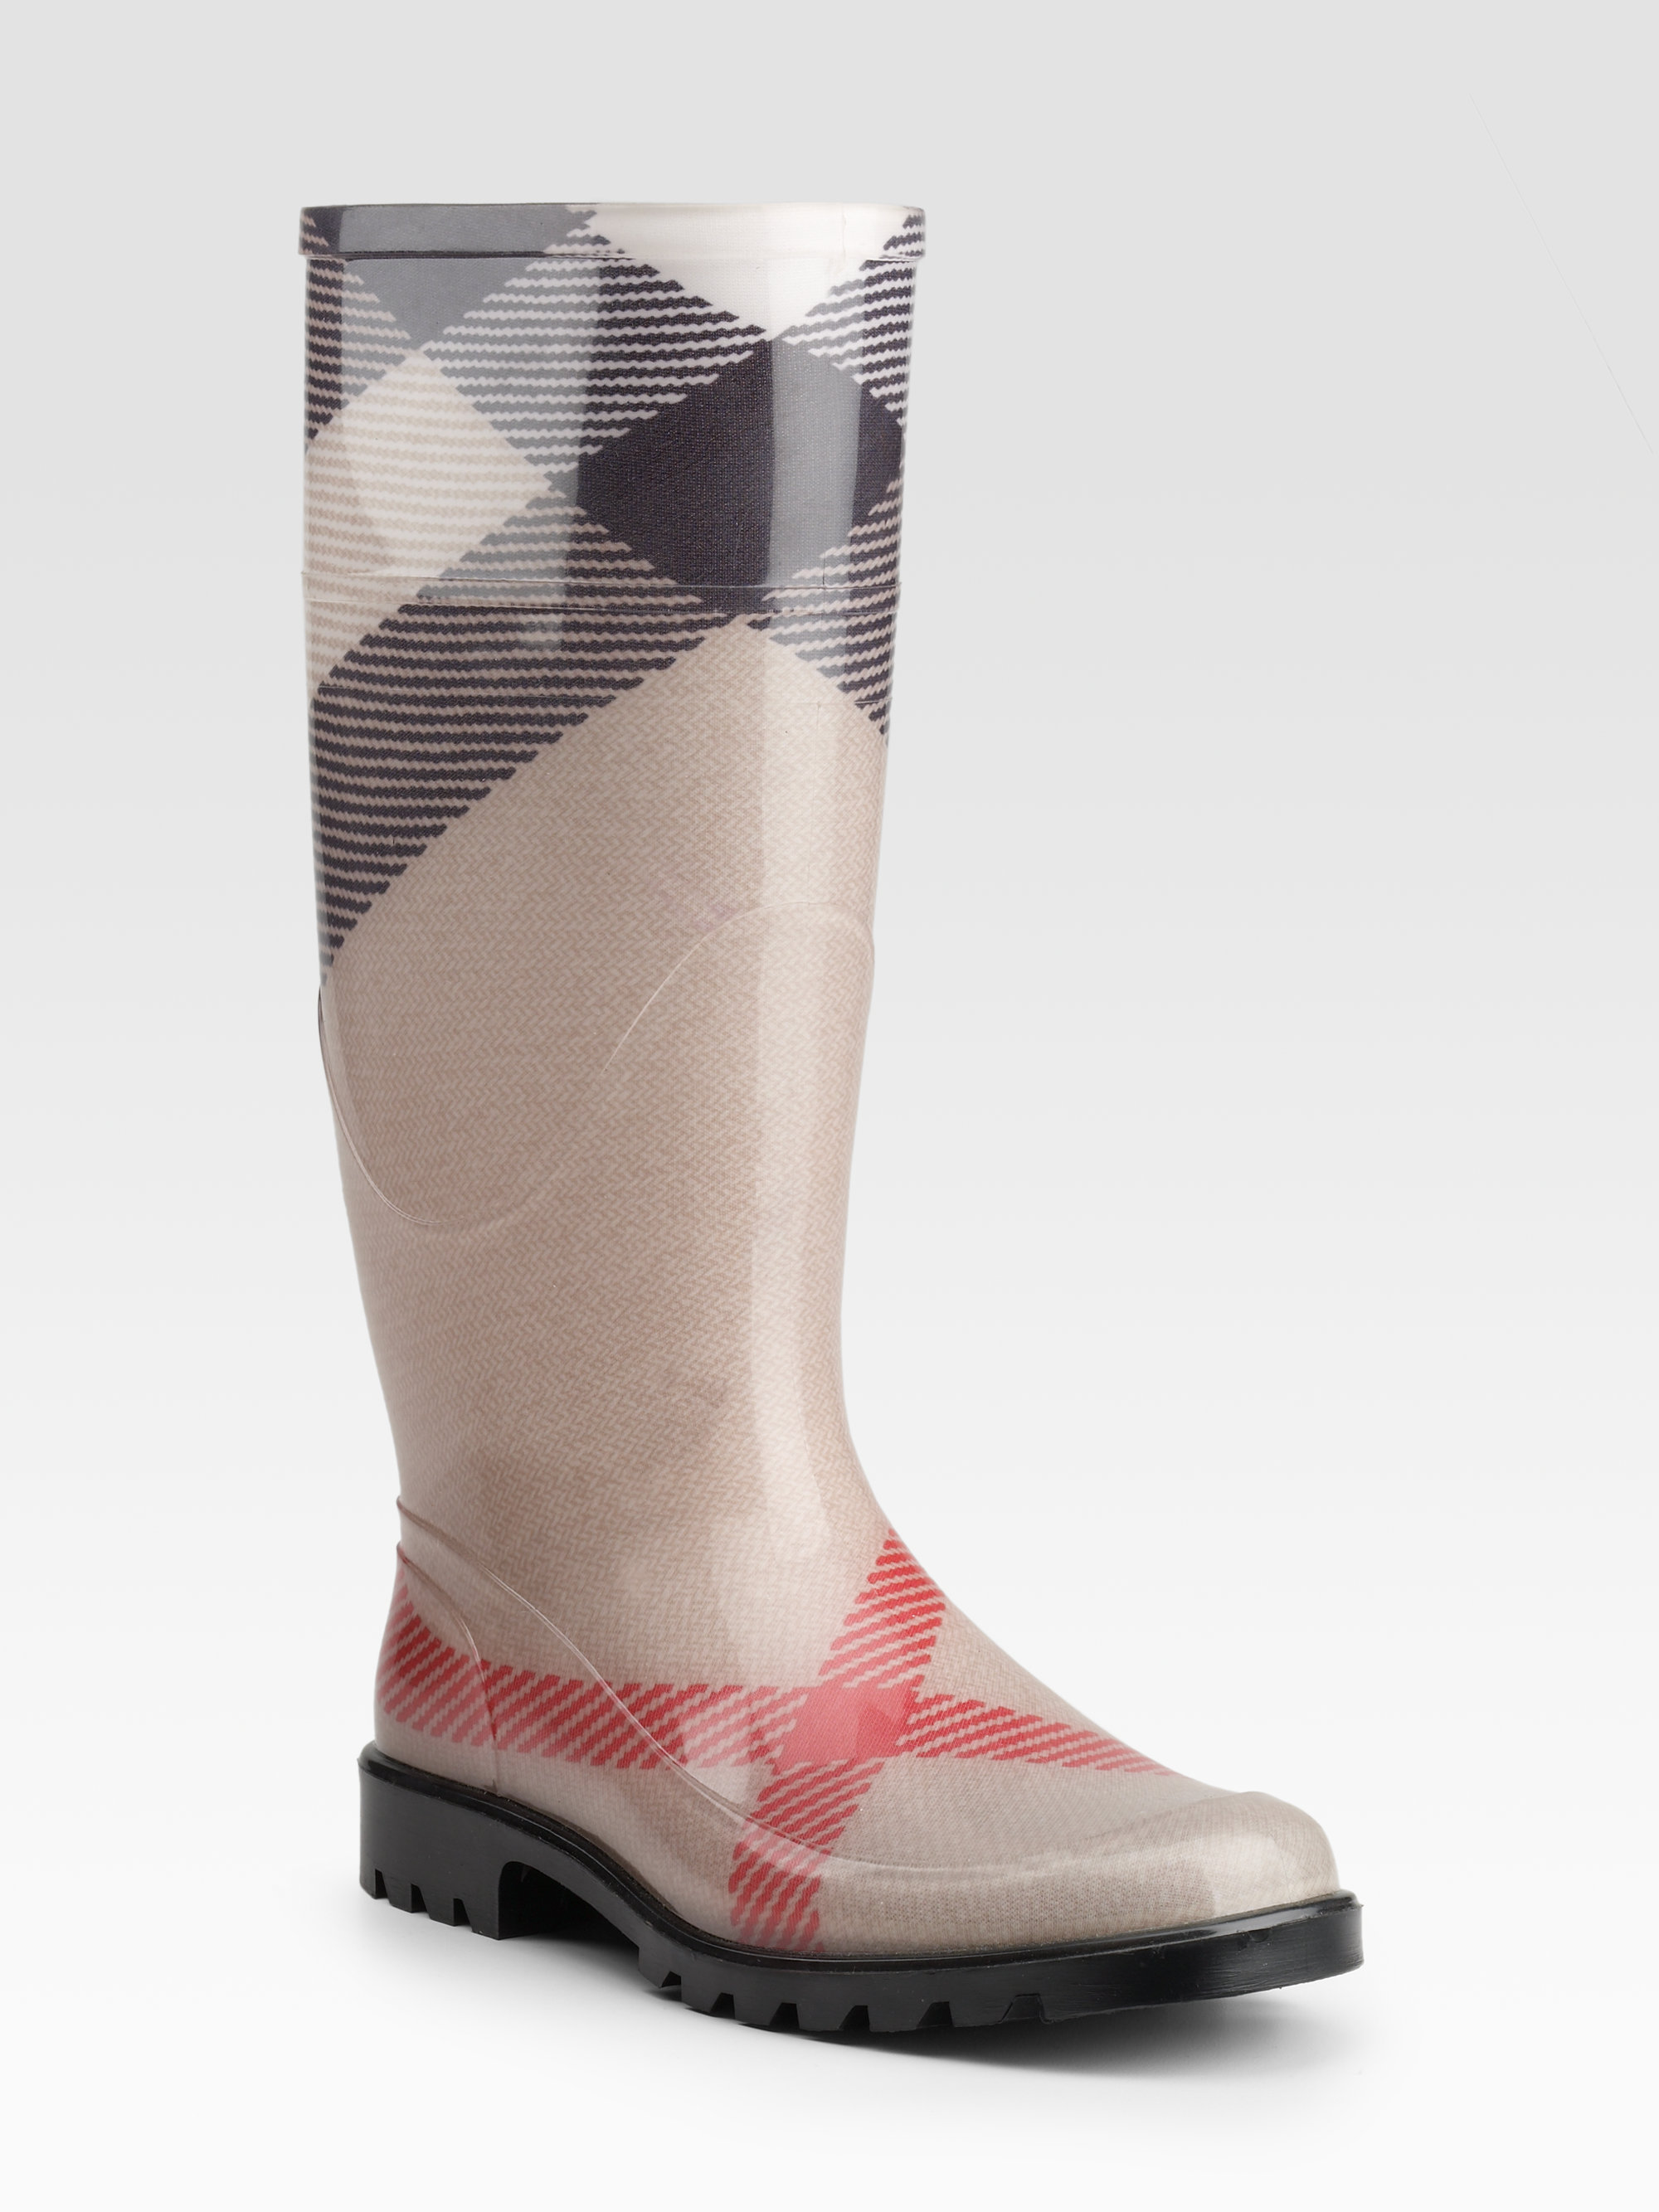 Lyst - Burberry Check Rain Boots in Black : burberry quilted rain boots - Adamdwight.com